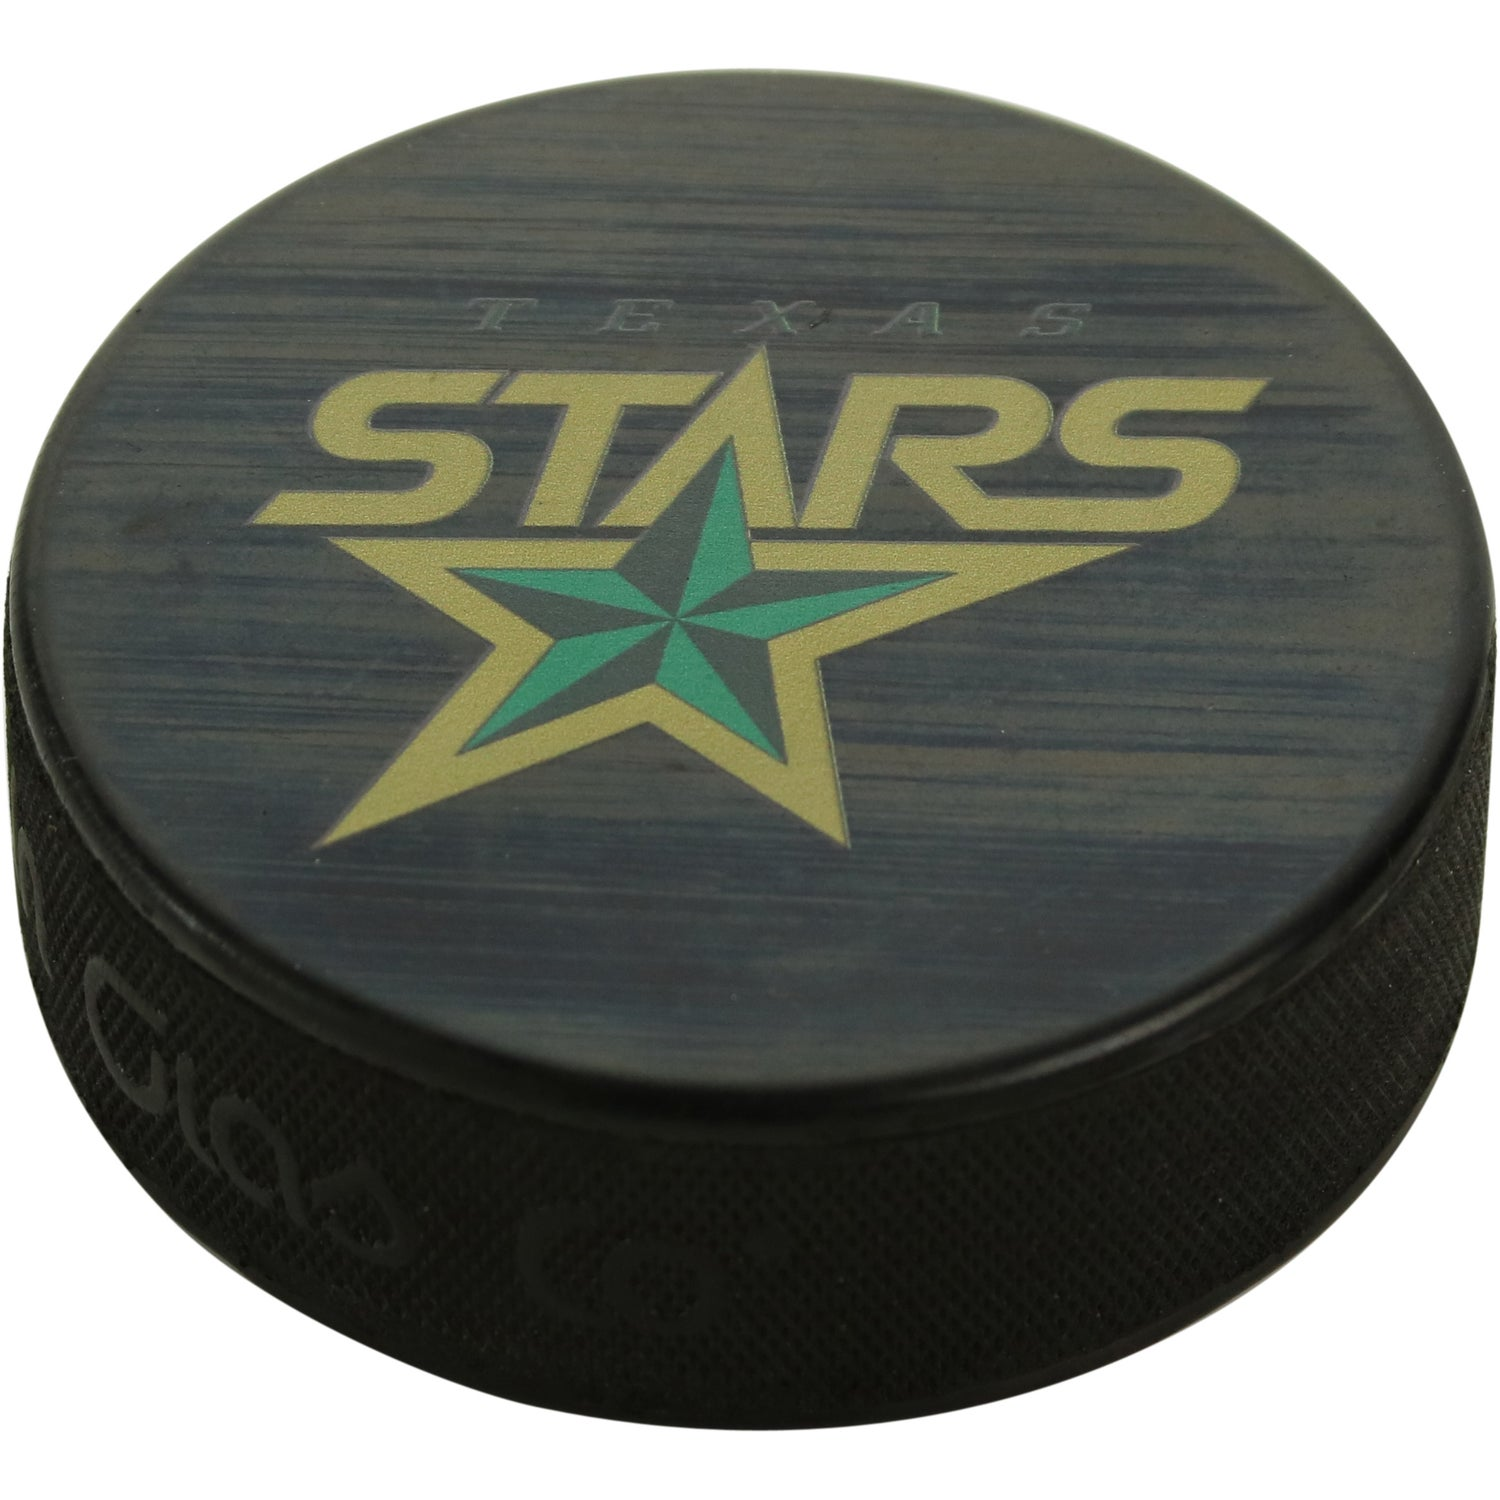 click here to order official game use ice hockey pucks